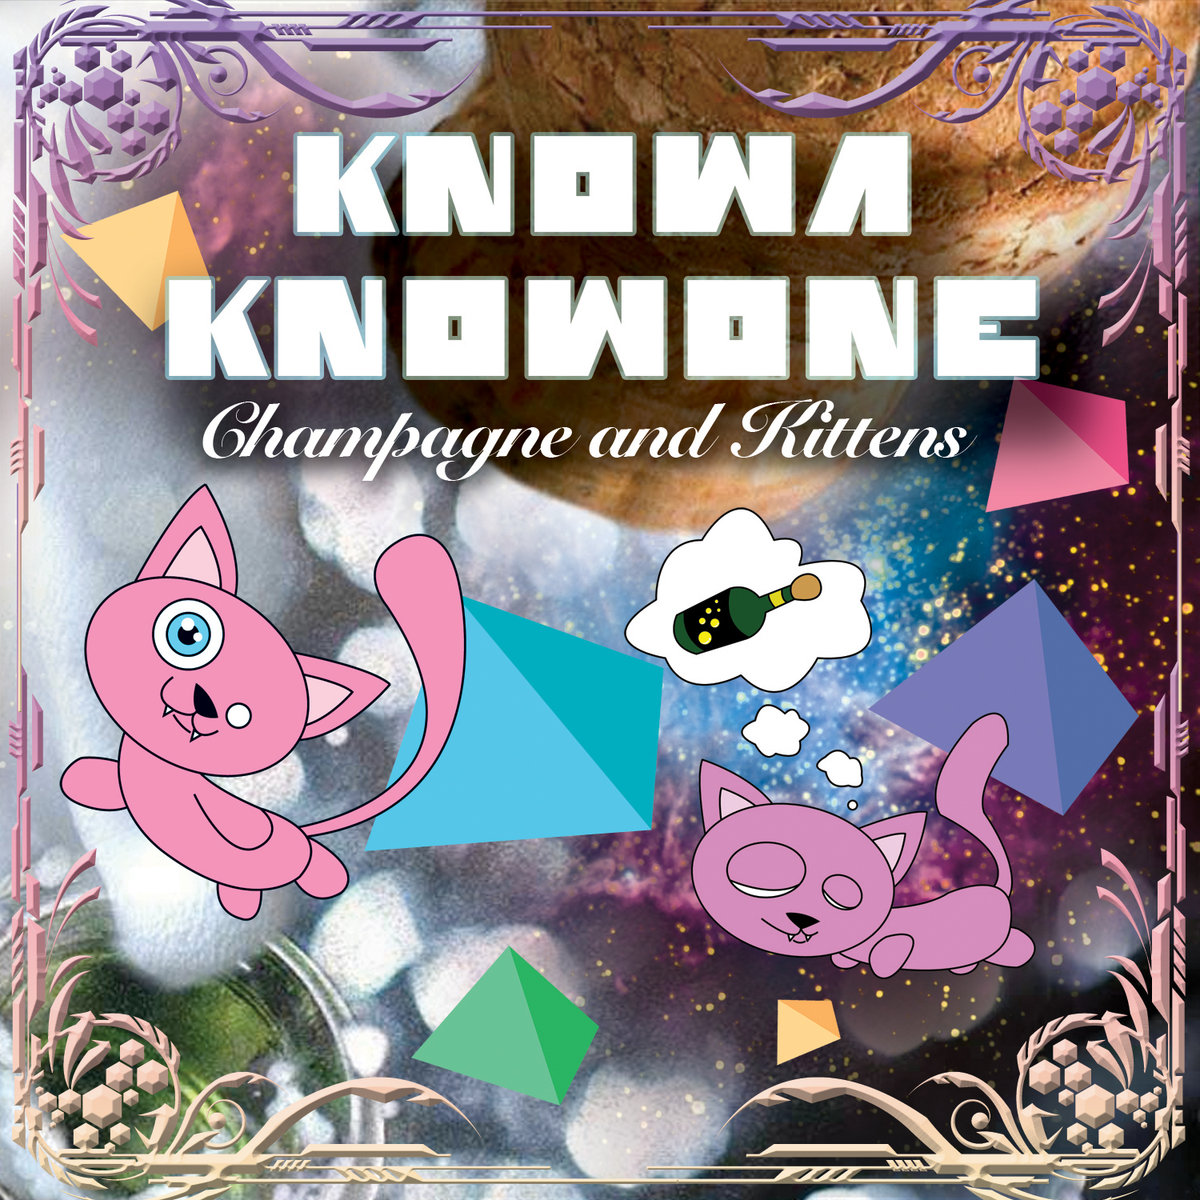 Knowa Knowone feat. Suntonio Bandanaz - That Propa @ 'Champagne and Kittens' album (bass, electronic)